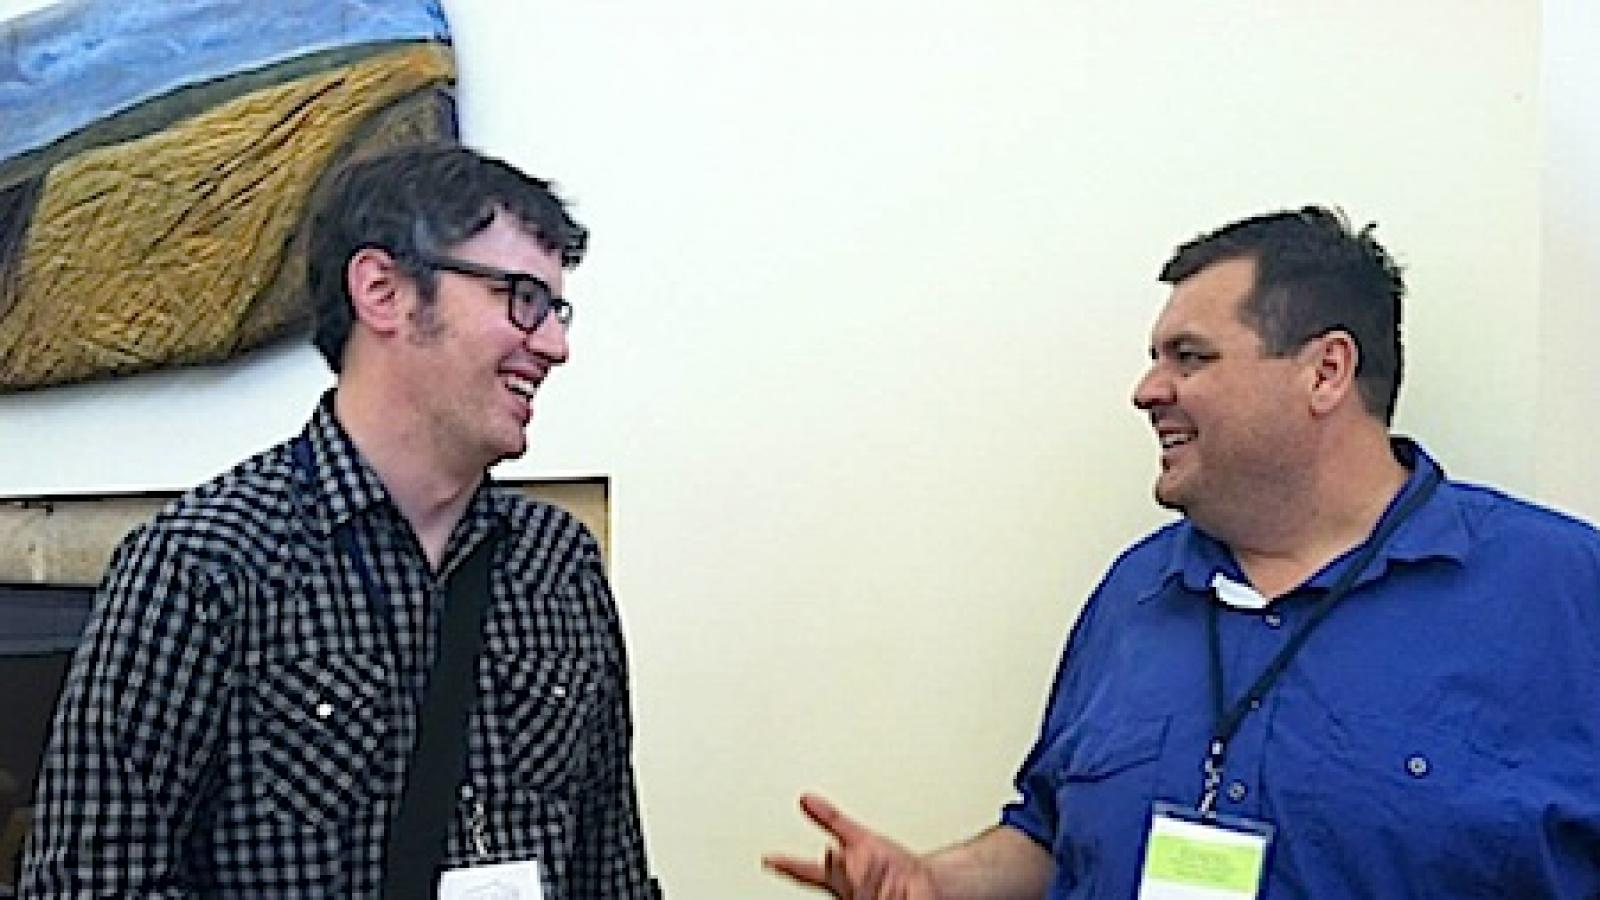 Matthew Fluharty (left) with Michael Strand at the June 2013 Rural Arts and Culture Summit. Photo by Michele Anderson